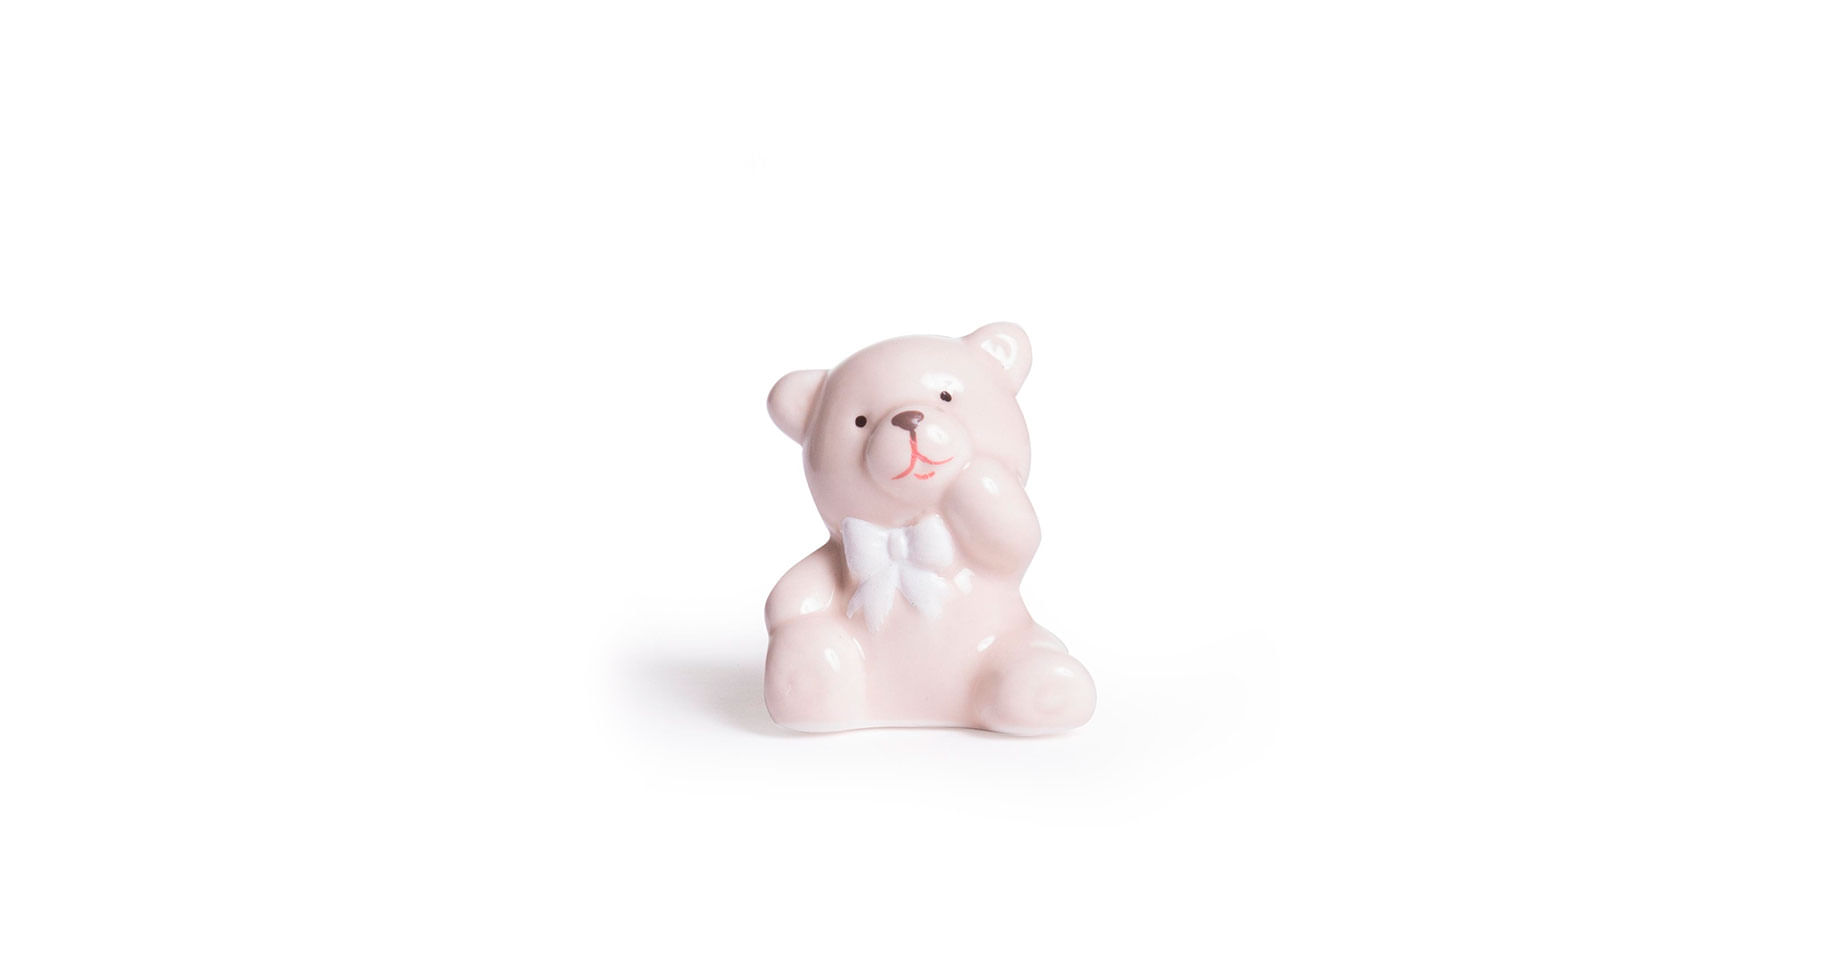 010227121_010_1-DECORATIVO-BABY-BEAR-3